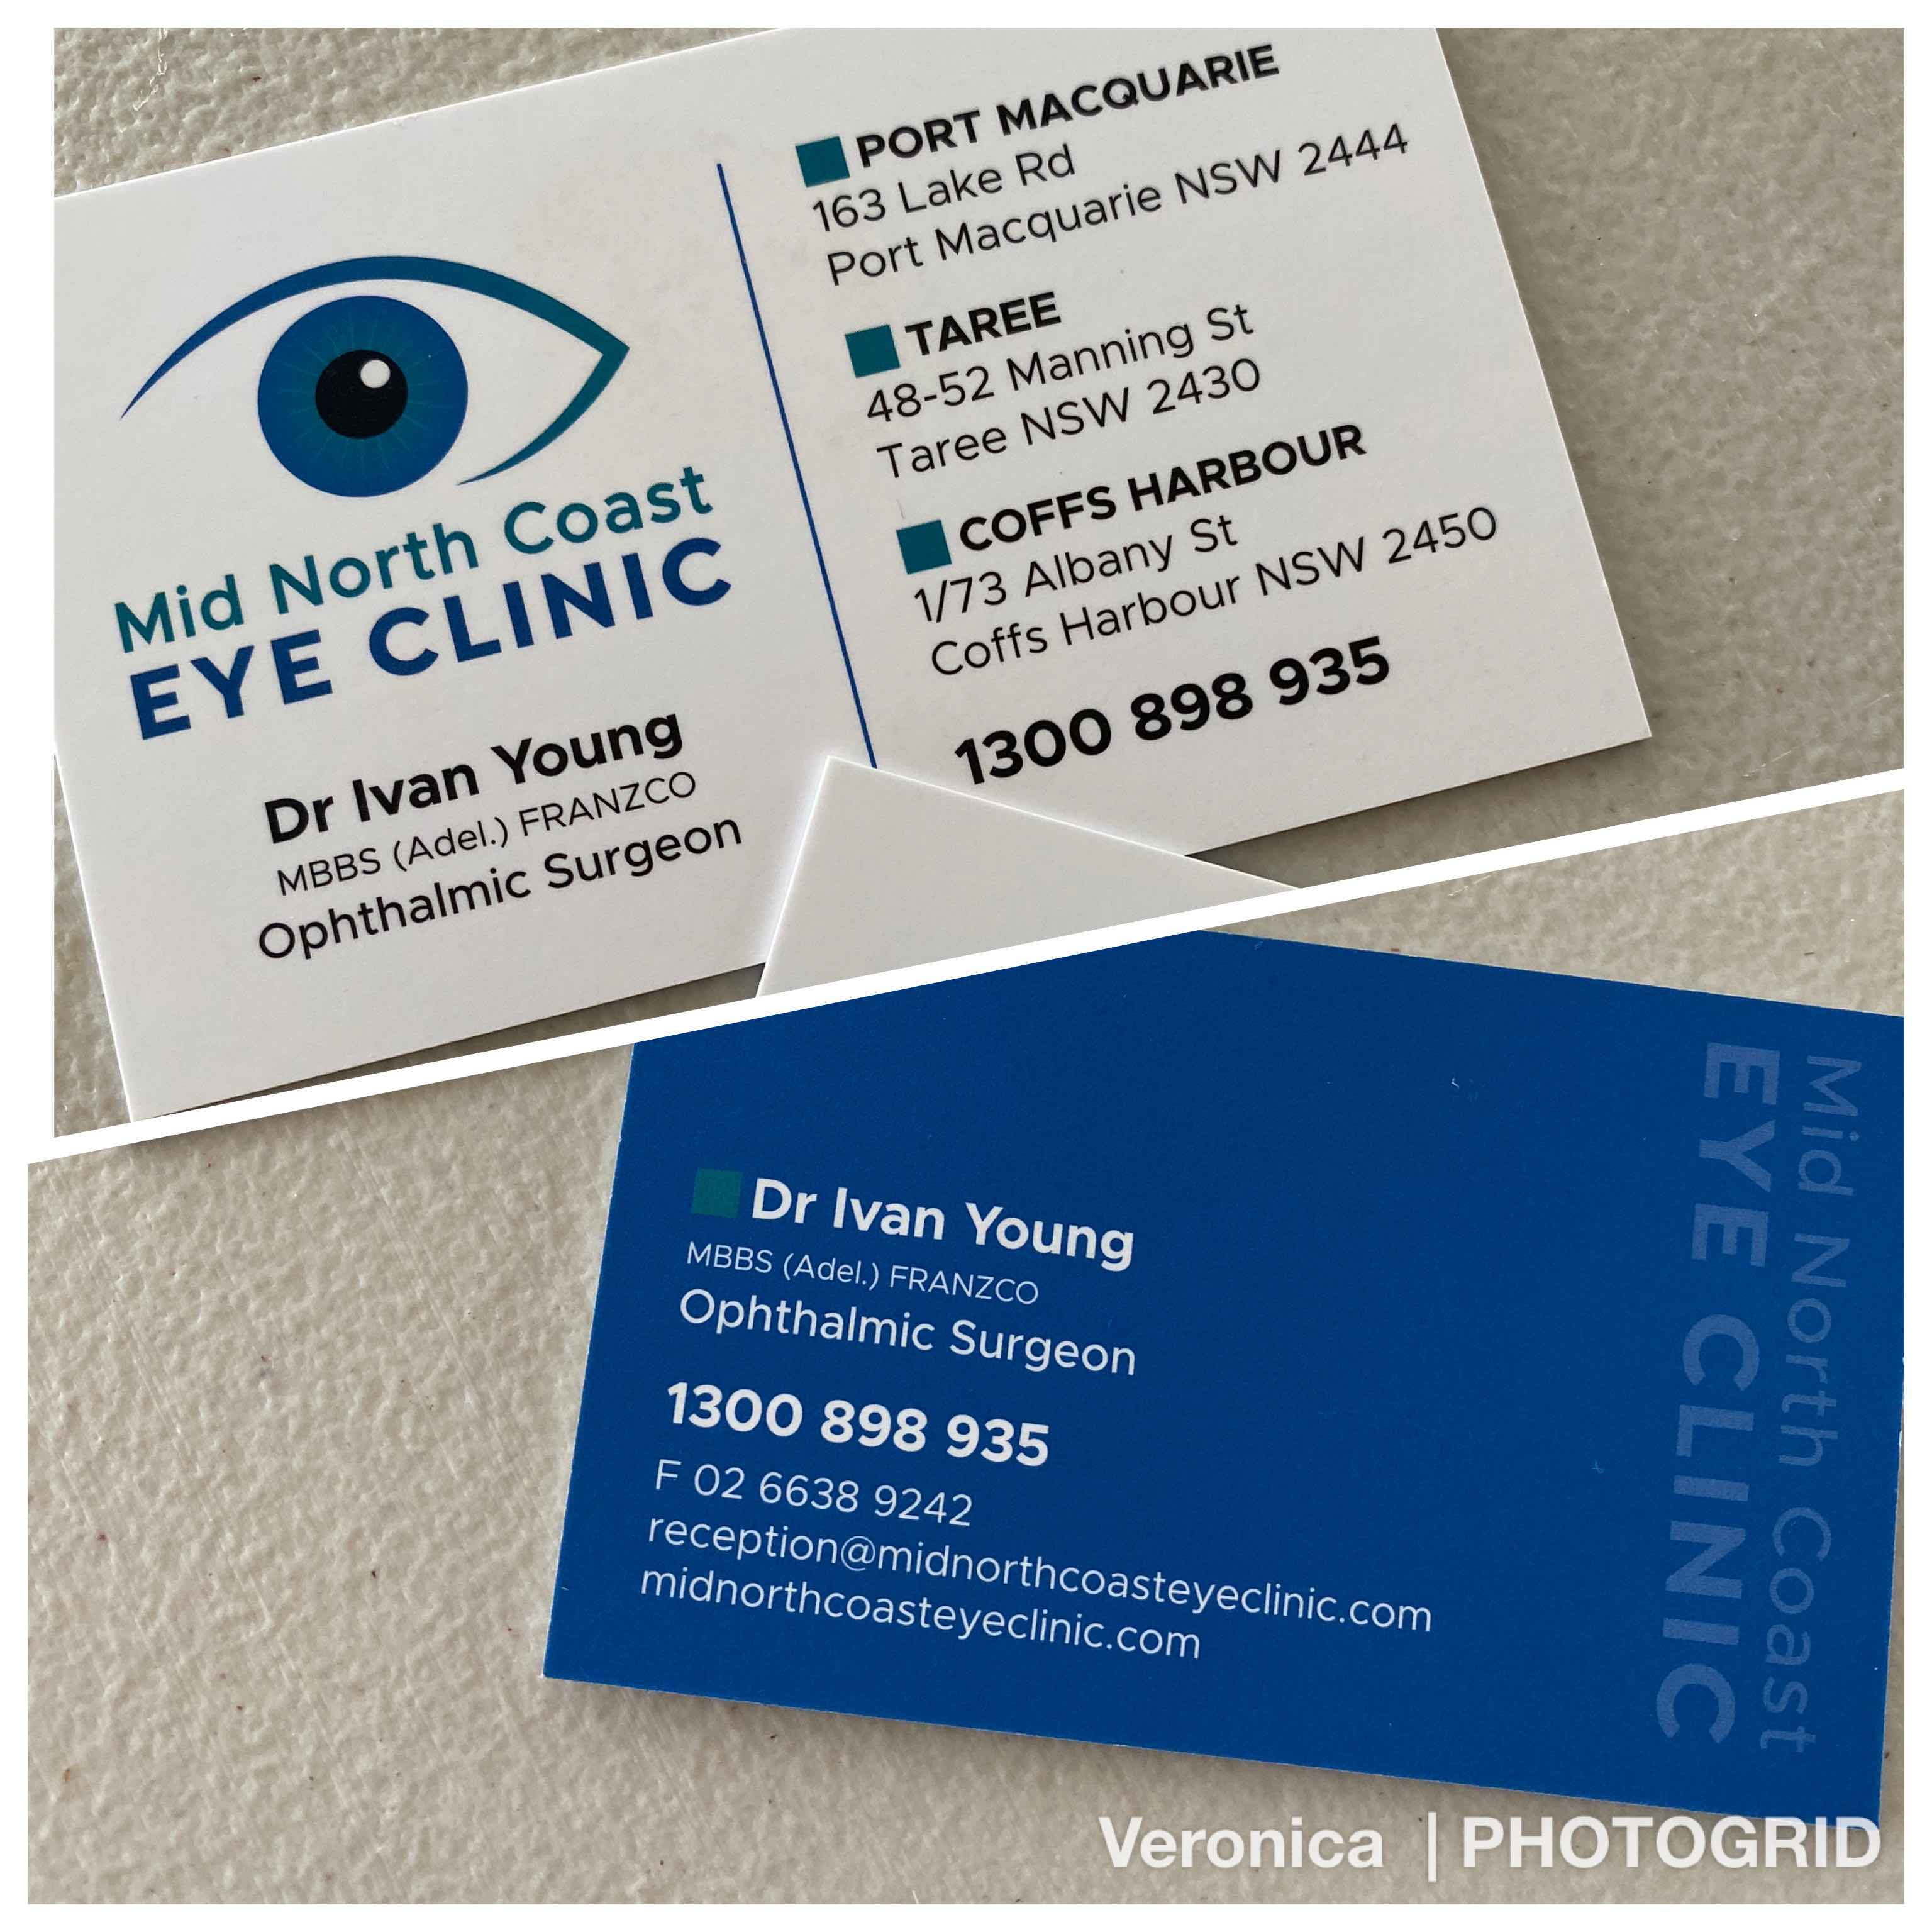 New business cards for Mid North Coast Eye Clinic by Vermilion Pinstripes